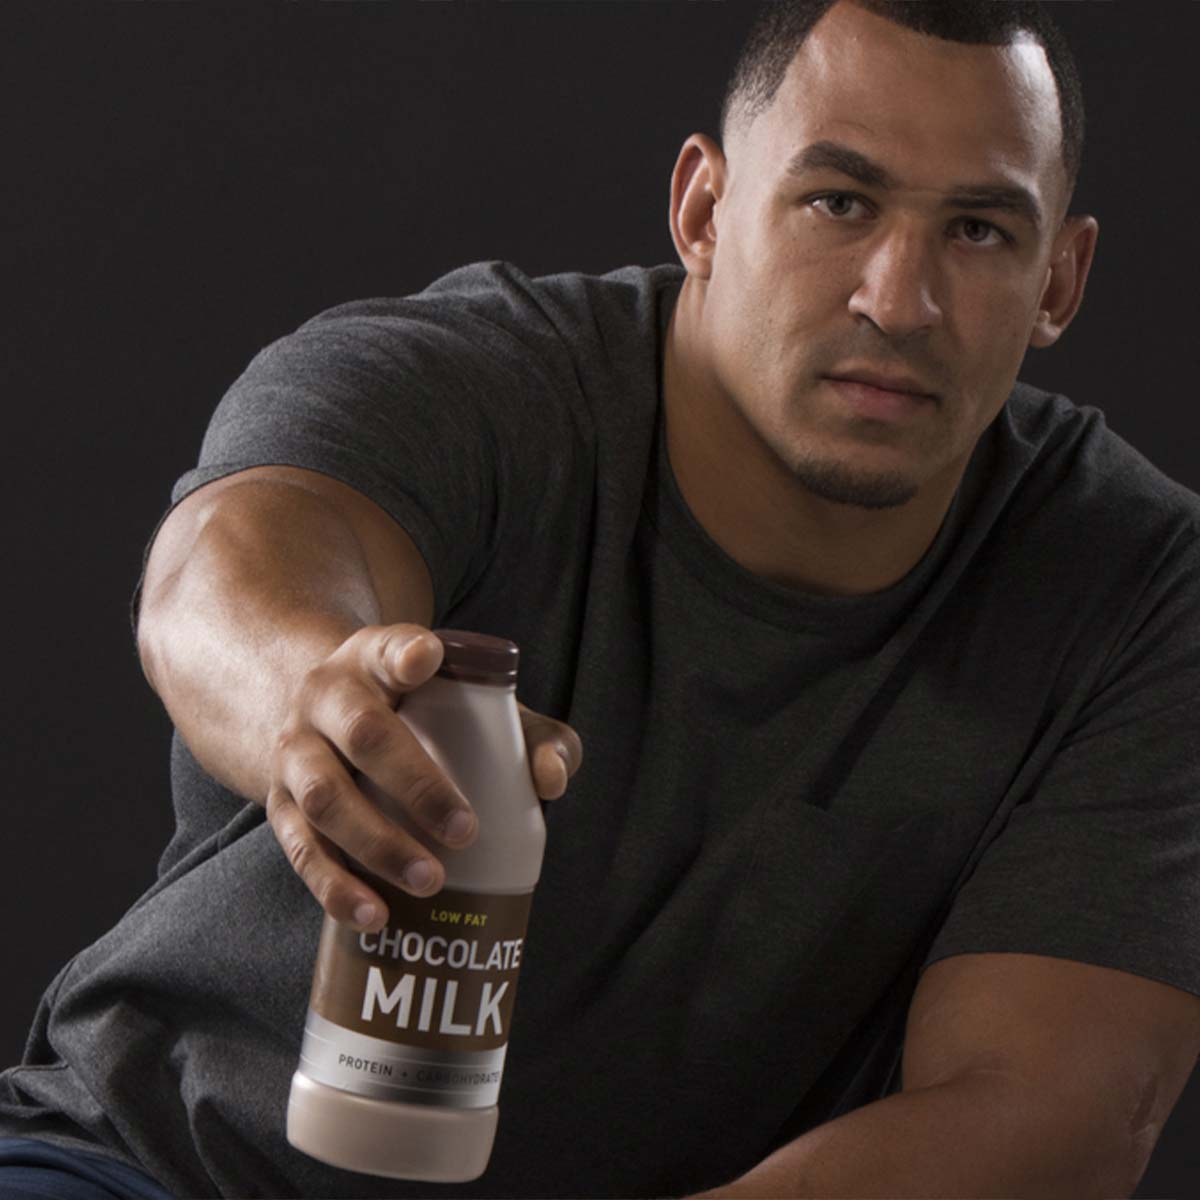 Tyrone Crawford on Why He Chooses Chocolate Milk